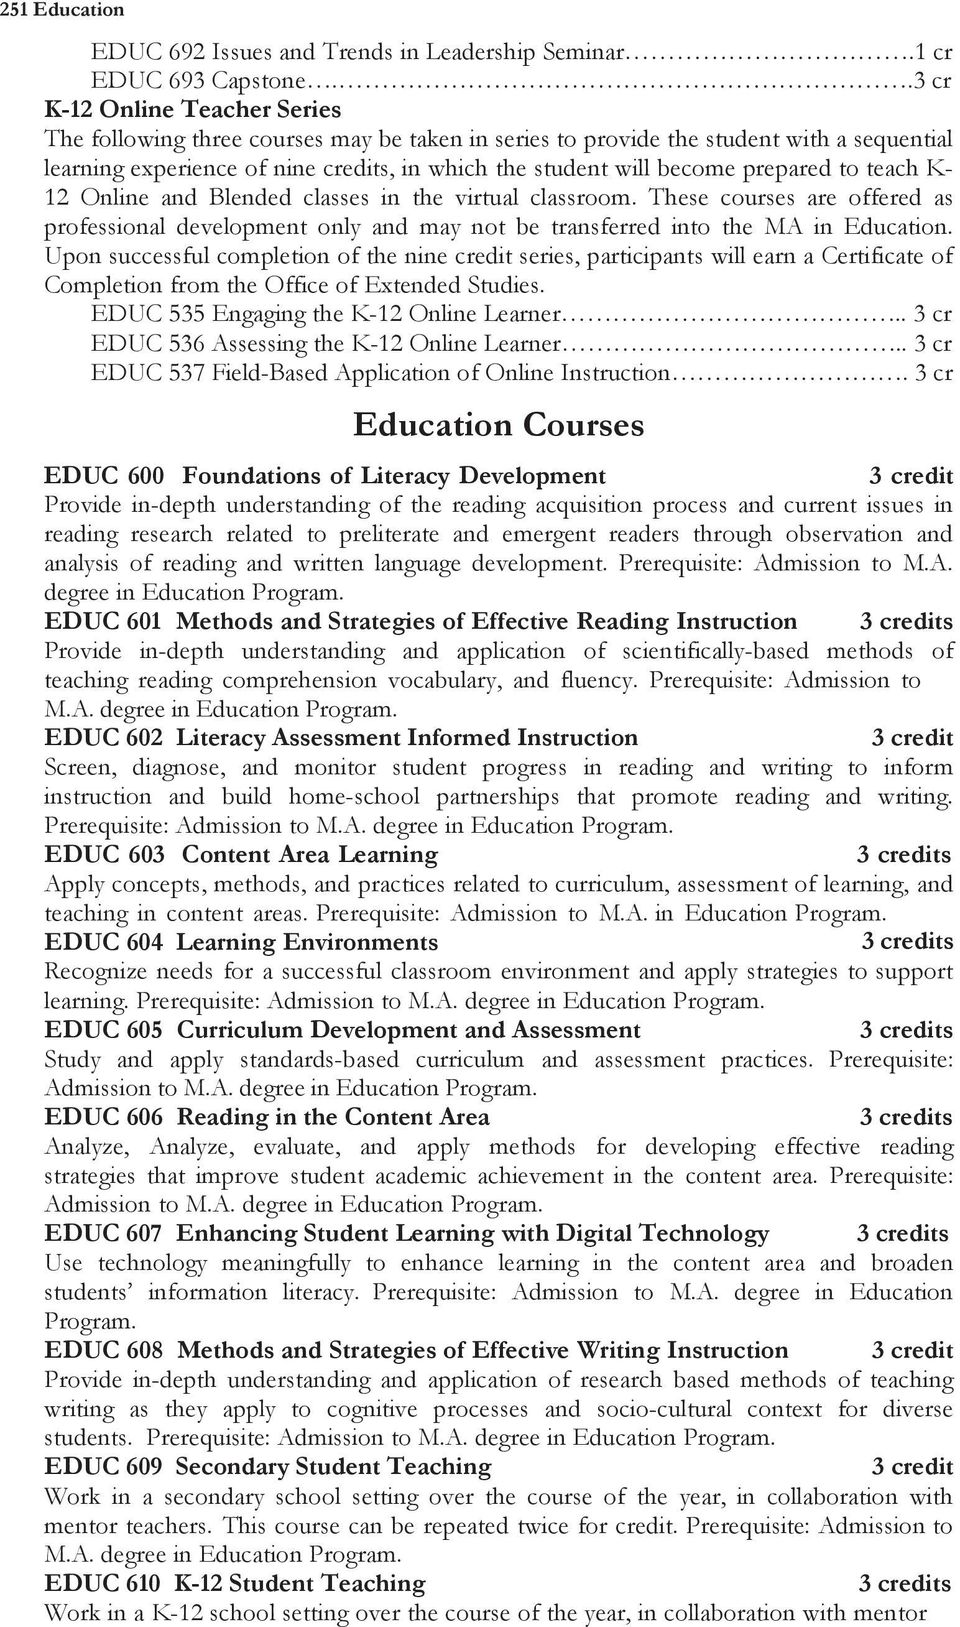 prepared to teach K- 12 Online and Blended classes in the virtual classroom. These courses are offered as professional development only and may not be transferred into the MA in Education.